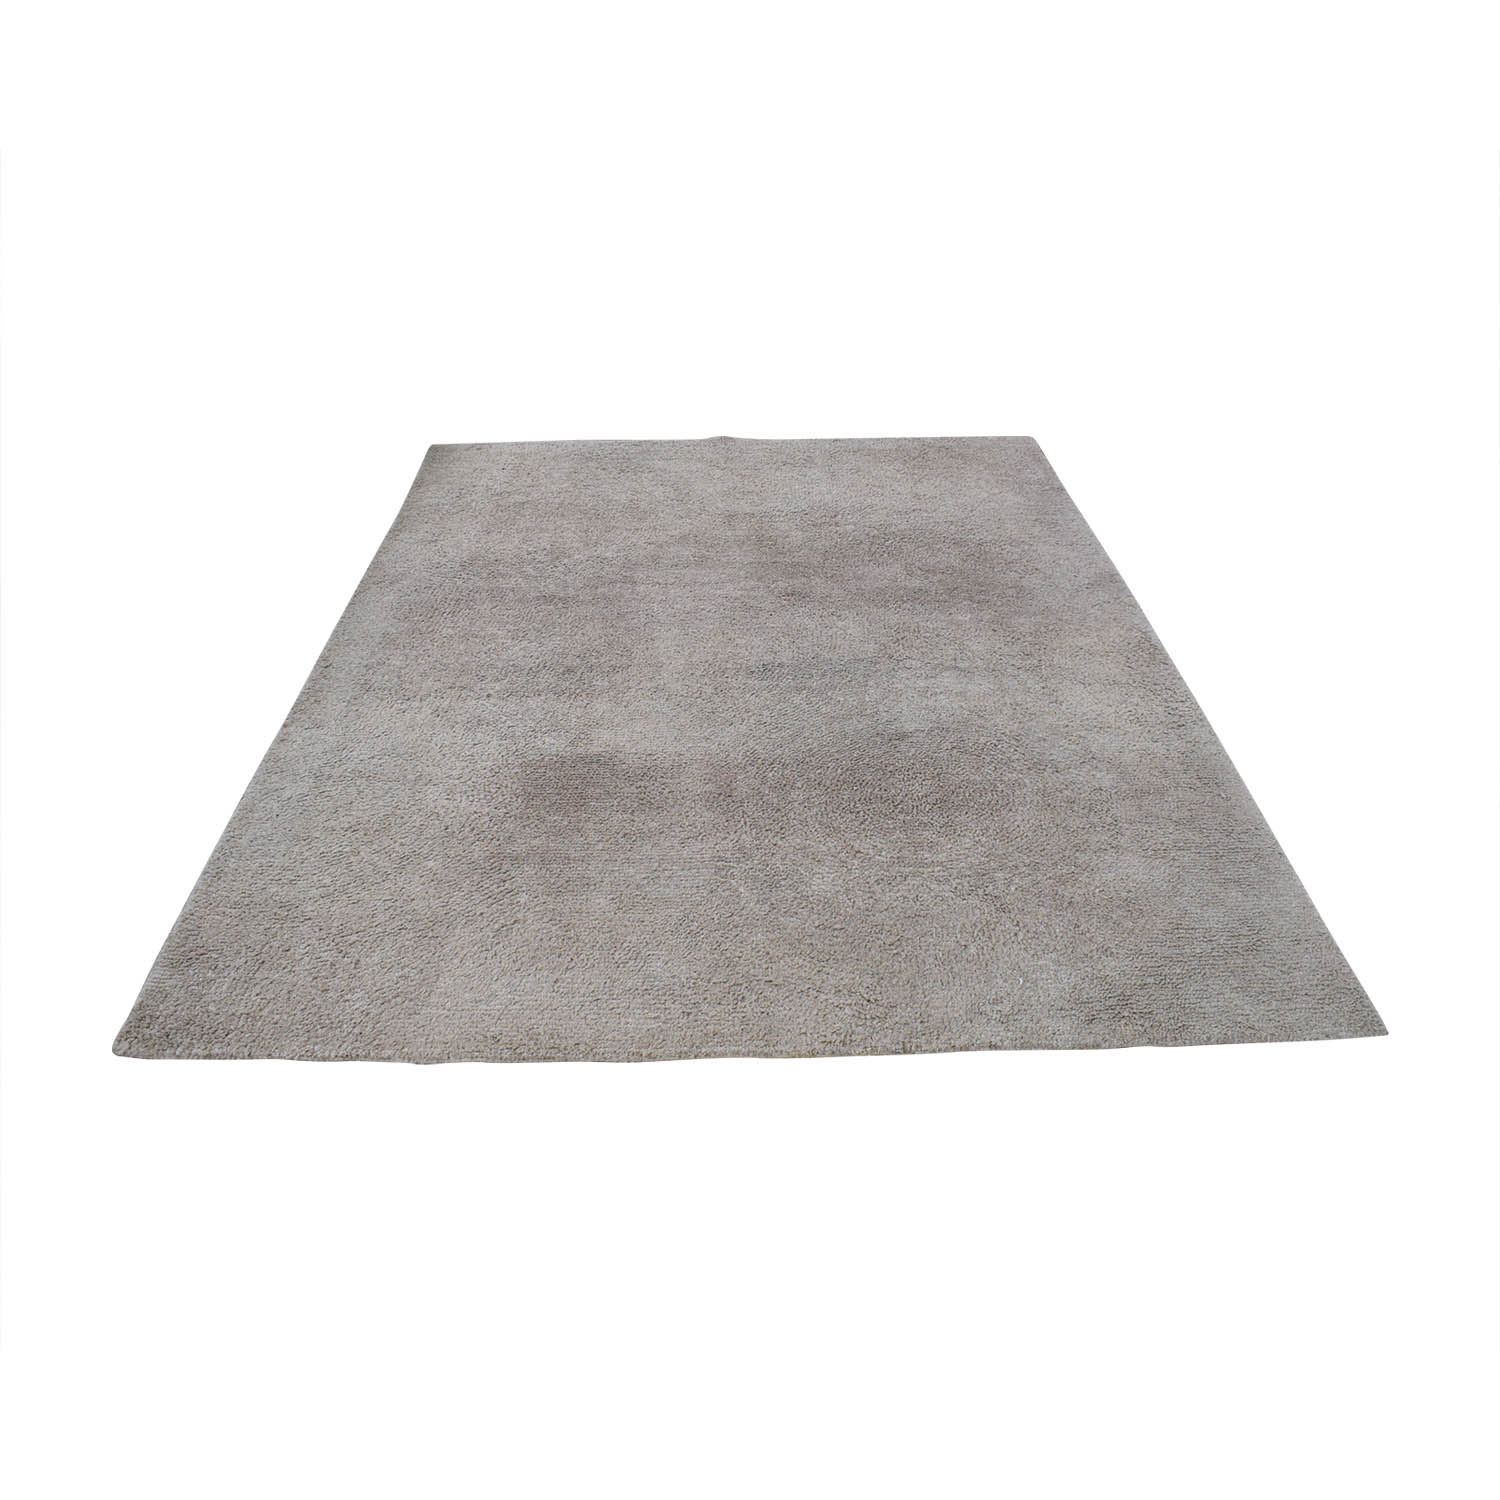 Surya Surya Rug coupon